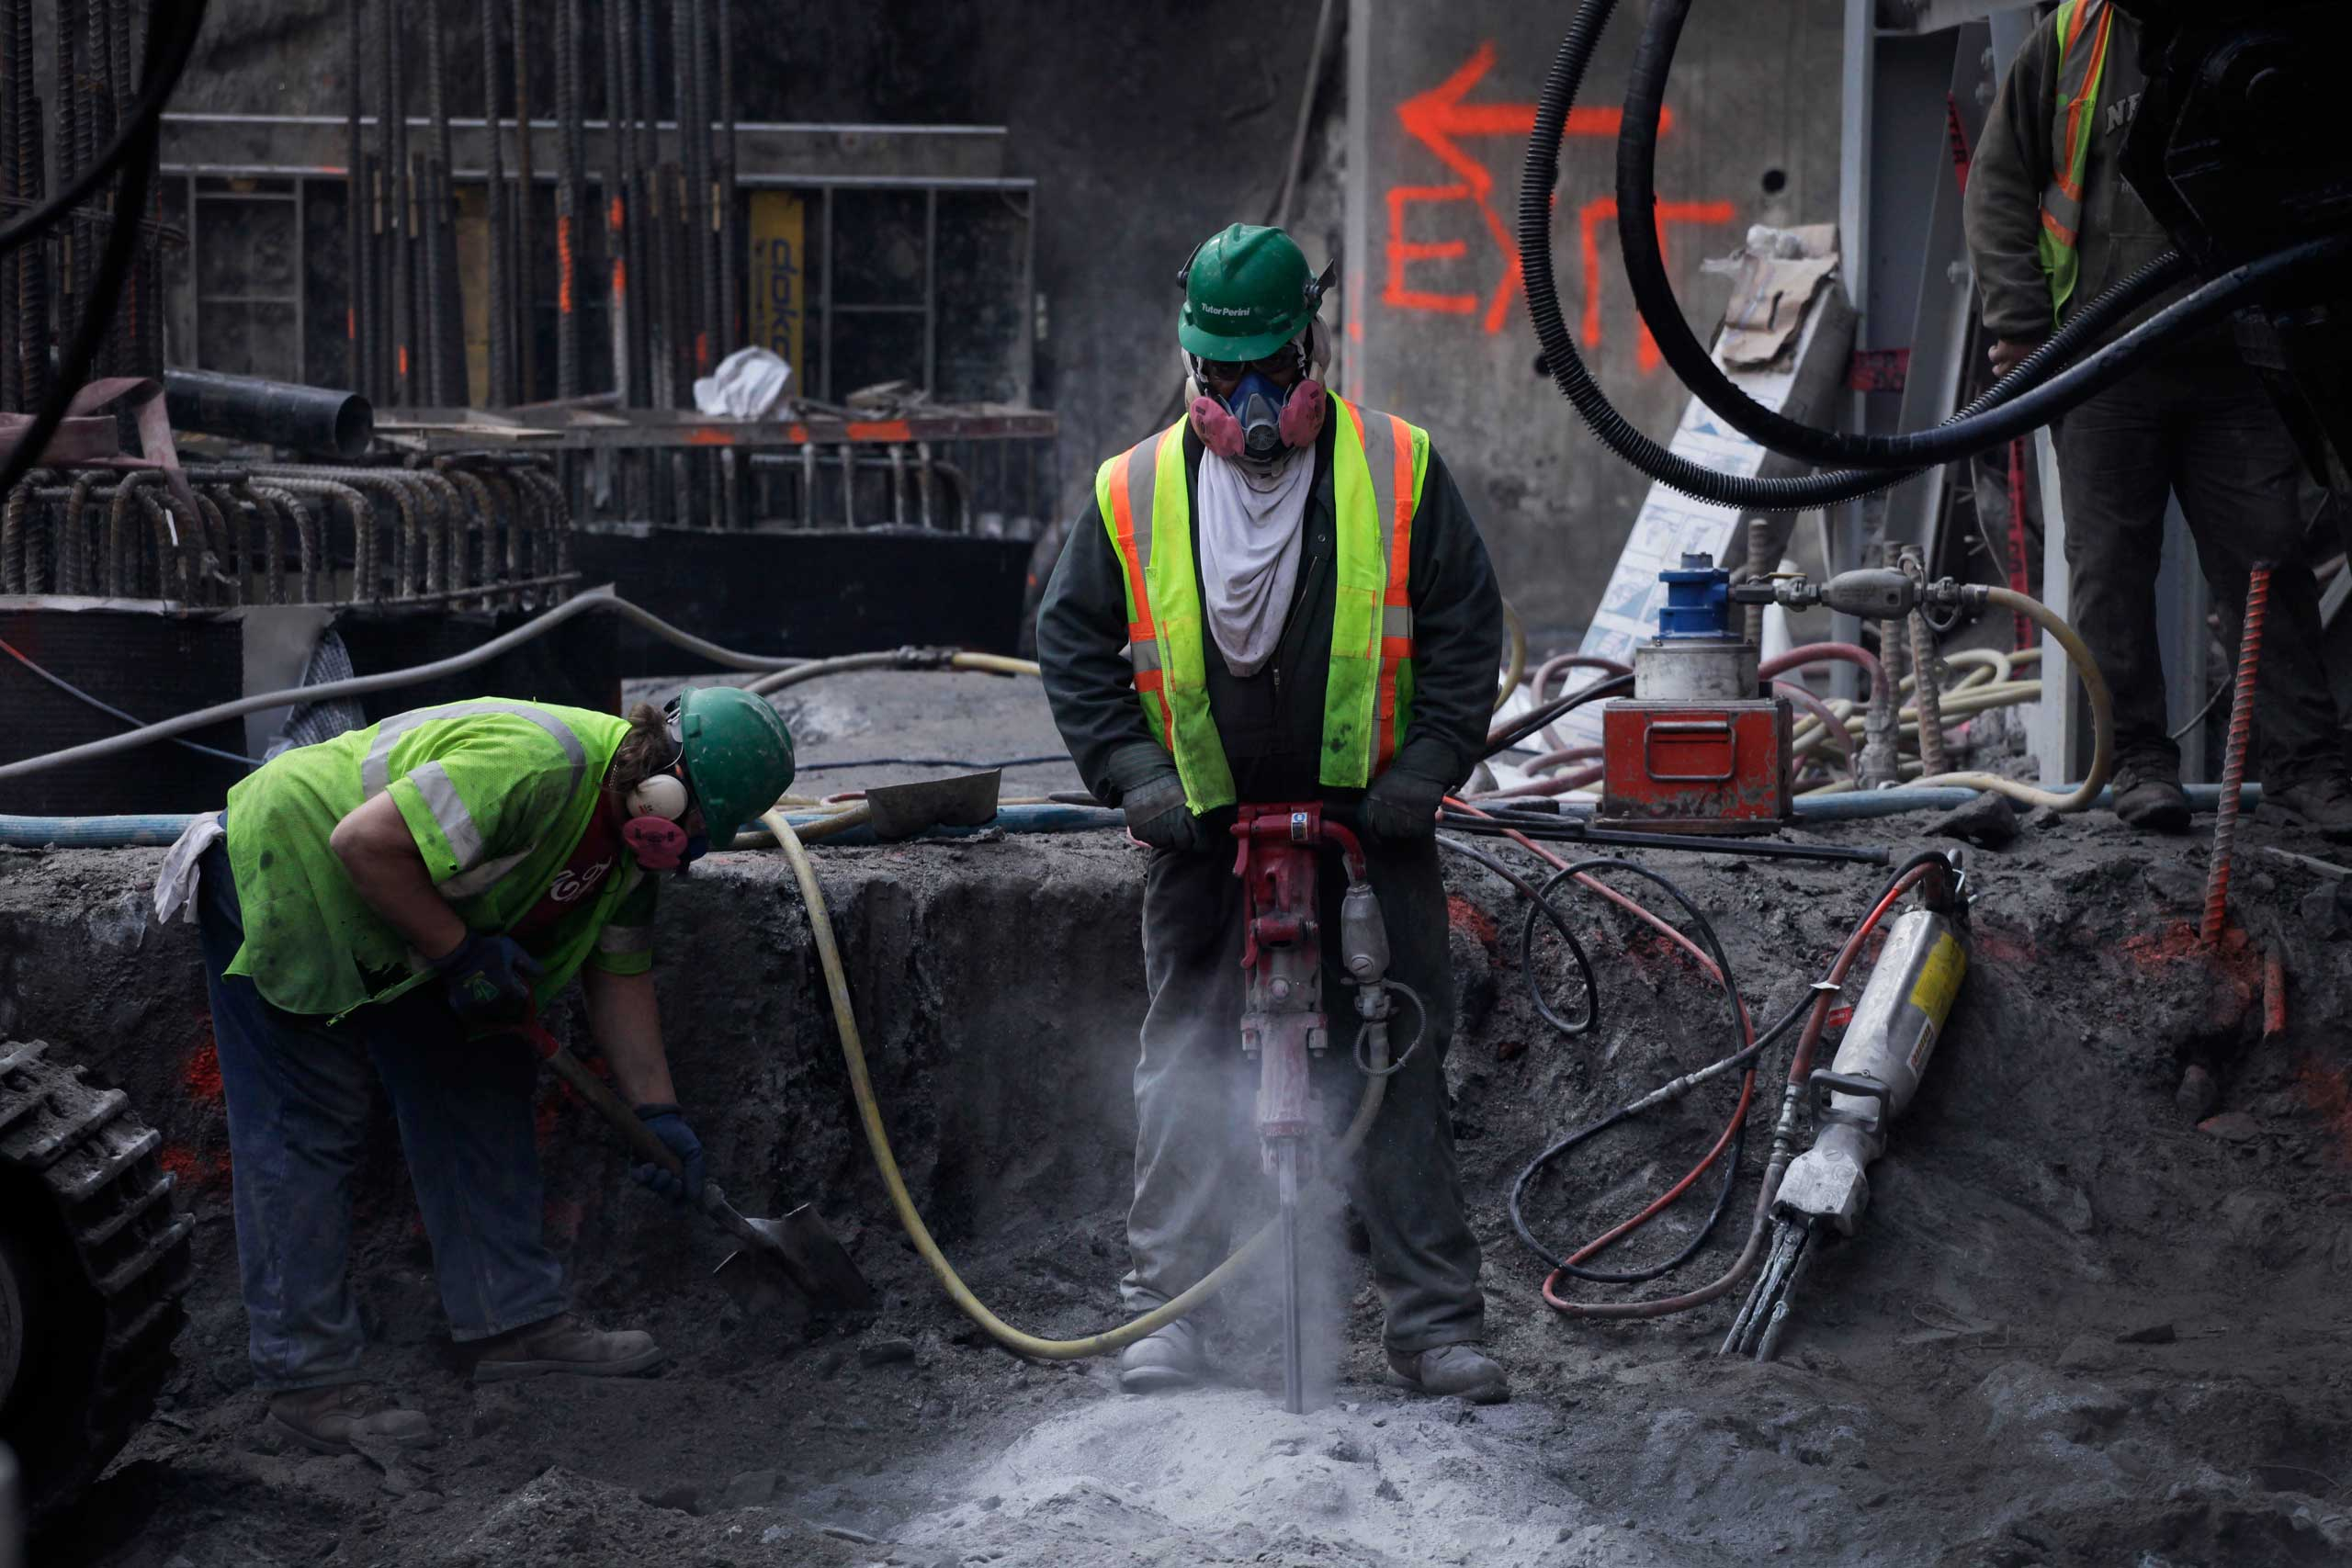 A worker uses a pneumatic jackhammer to drill rock at the foundation for the World Trade Center's transportation hub, Nov. 10, 2011 in New York.